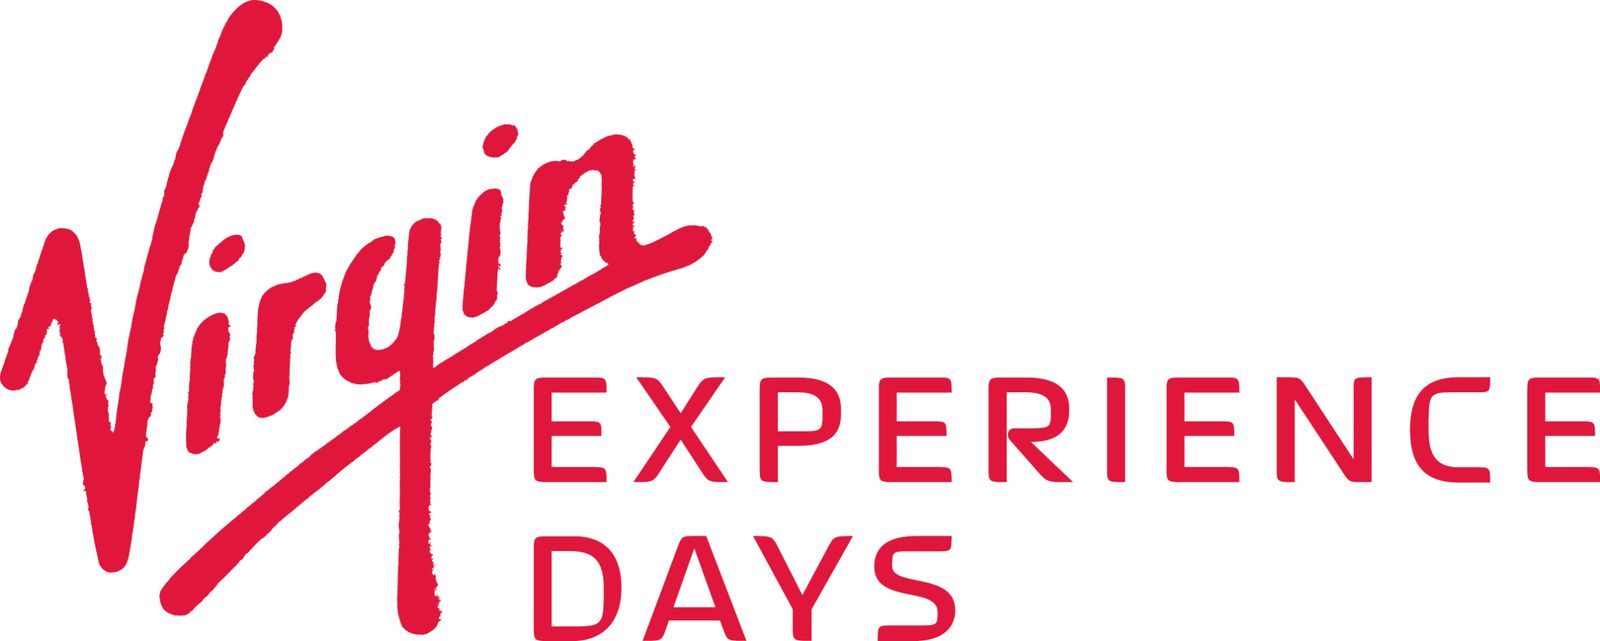 Competition to Win £200 Virgin Experience Days Voucher